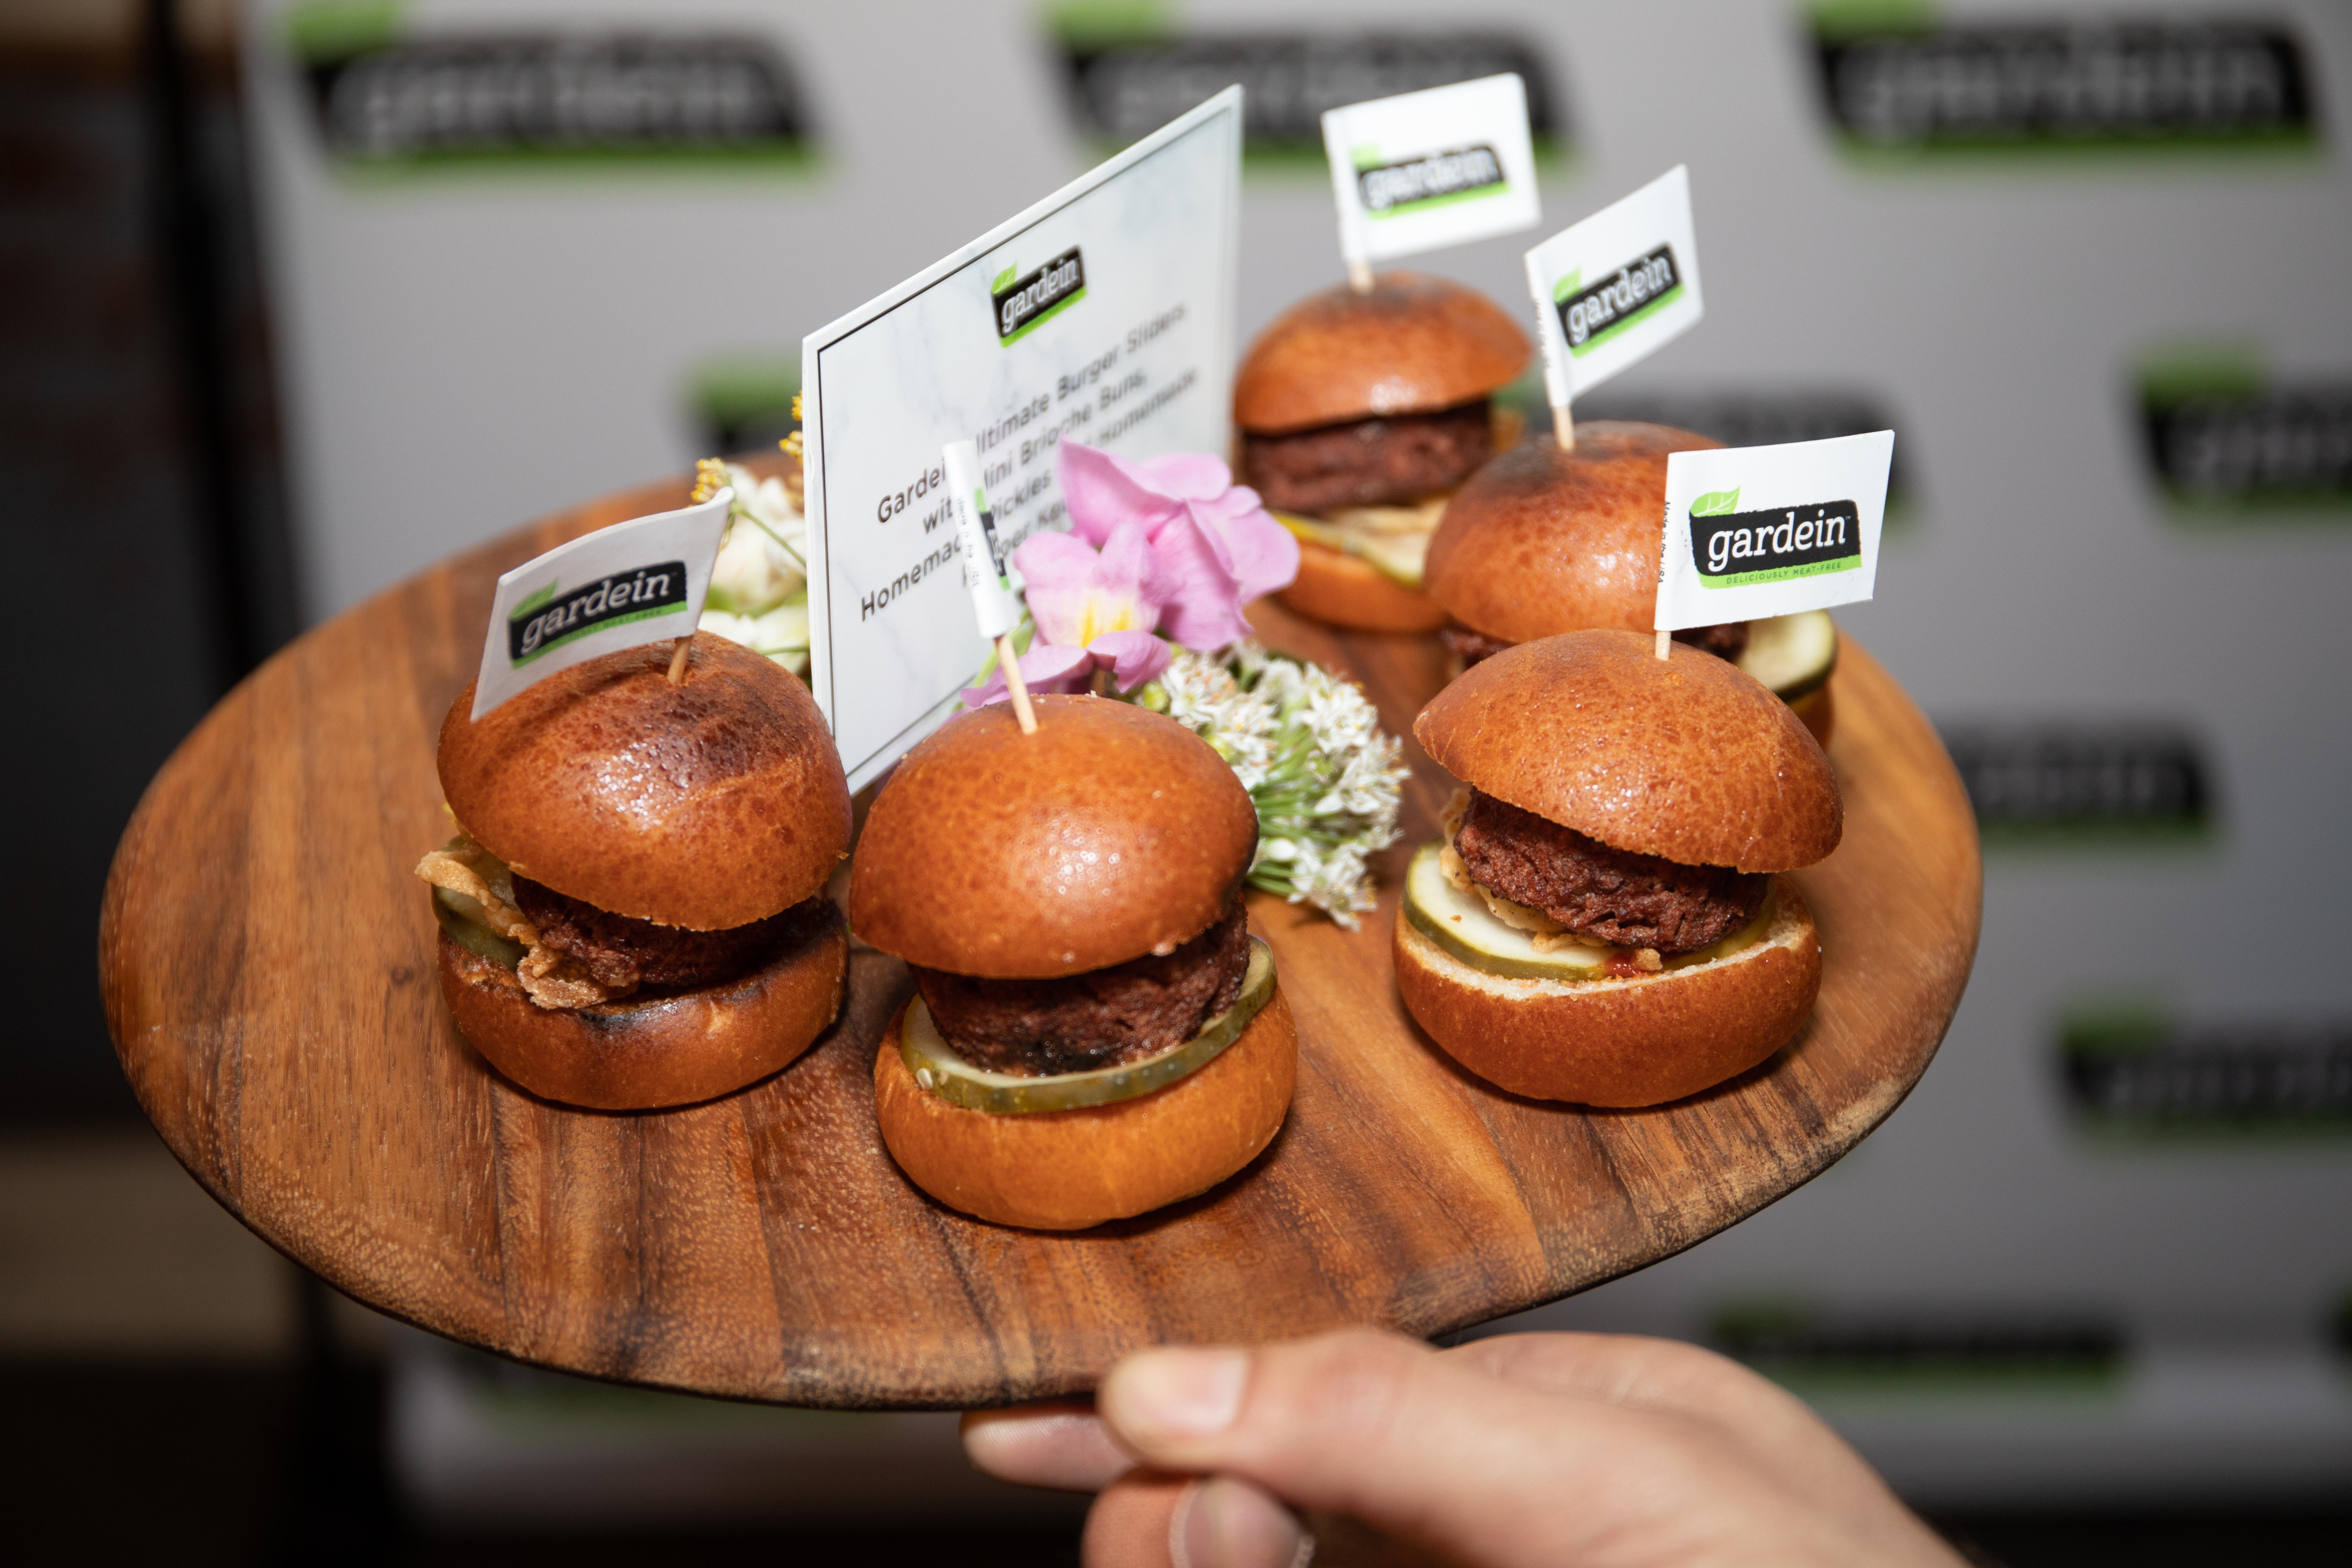 Beyond Meat and Impossible Foods have a new foe in the plant-based burger wars: the Ultimate Burger